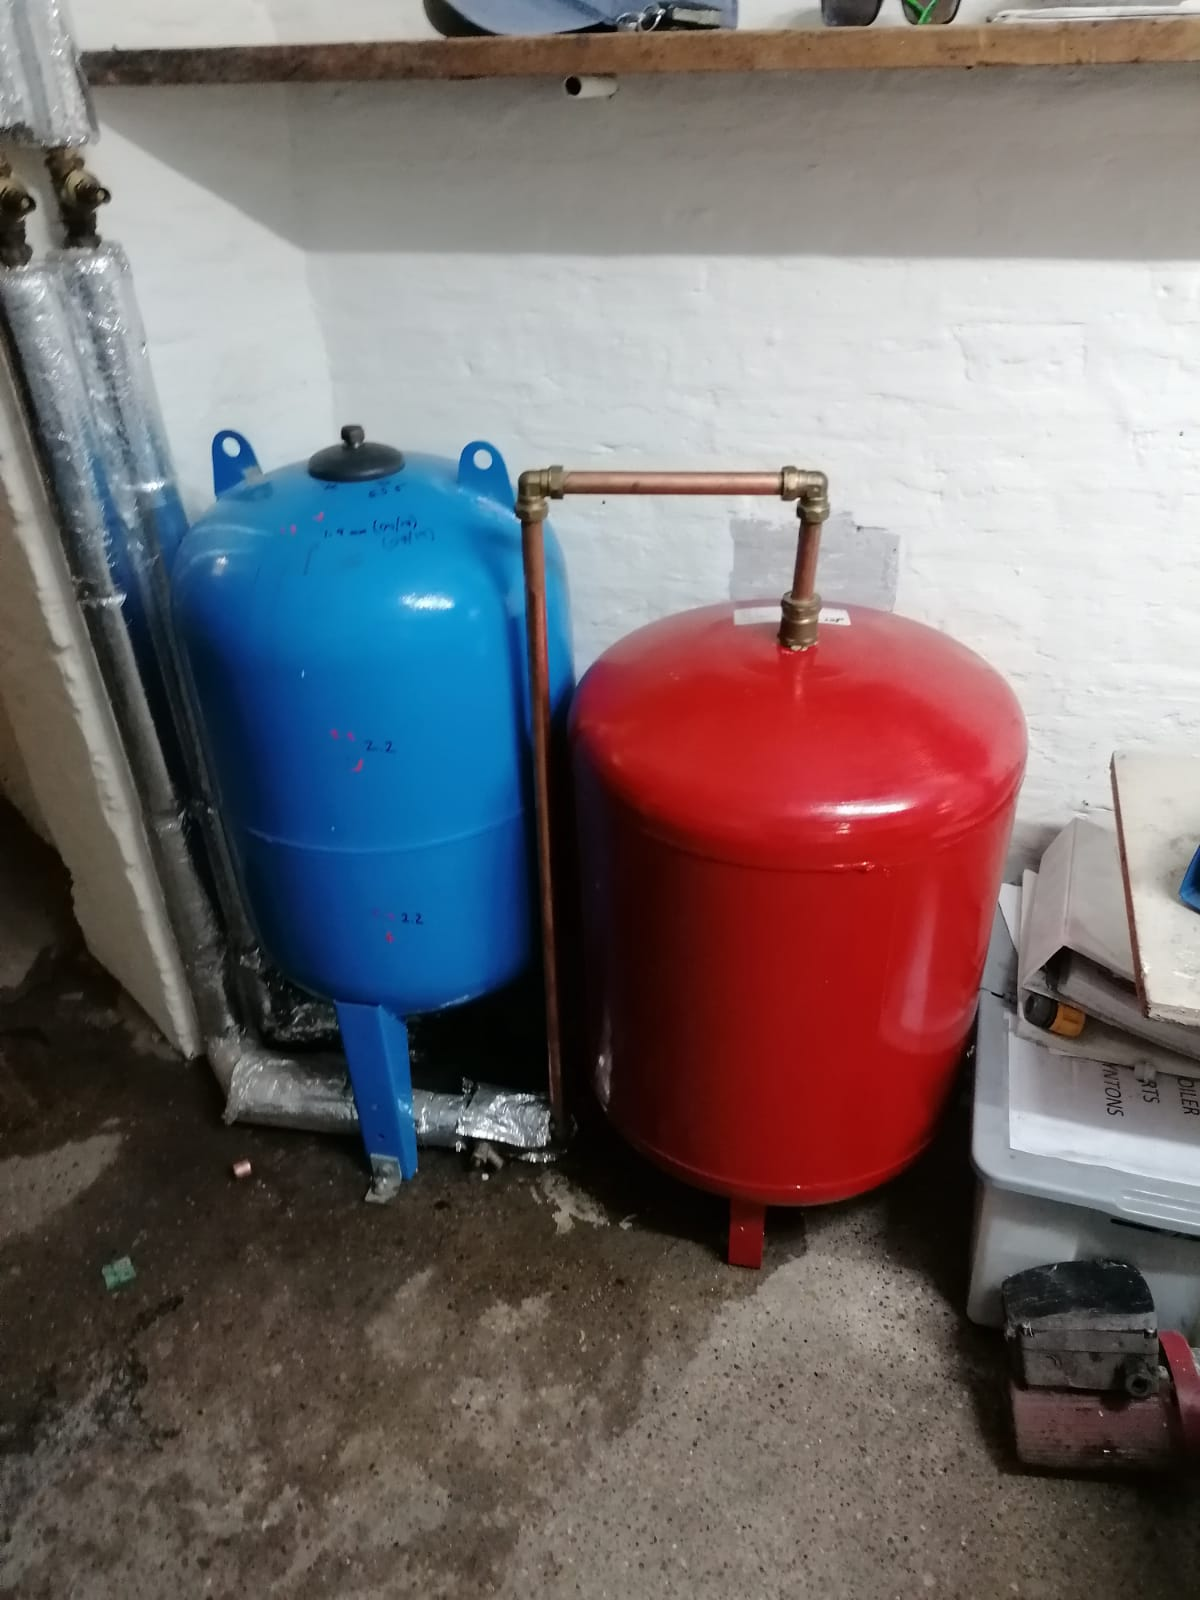 the red expansion vessel is suitable for heating systems, at this site it was connected to potable water which is against the regulations